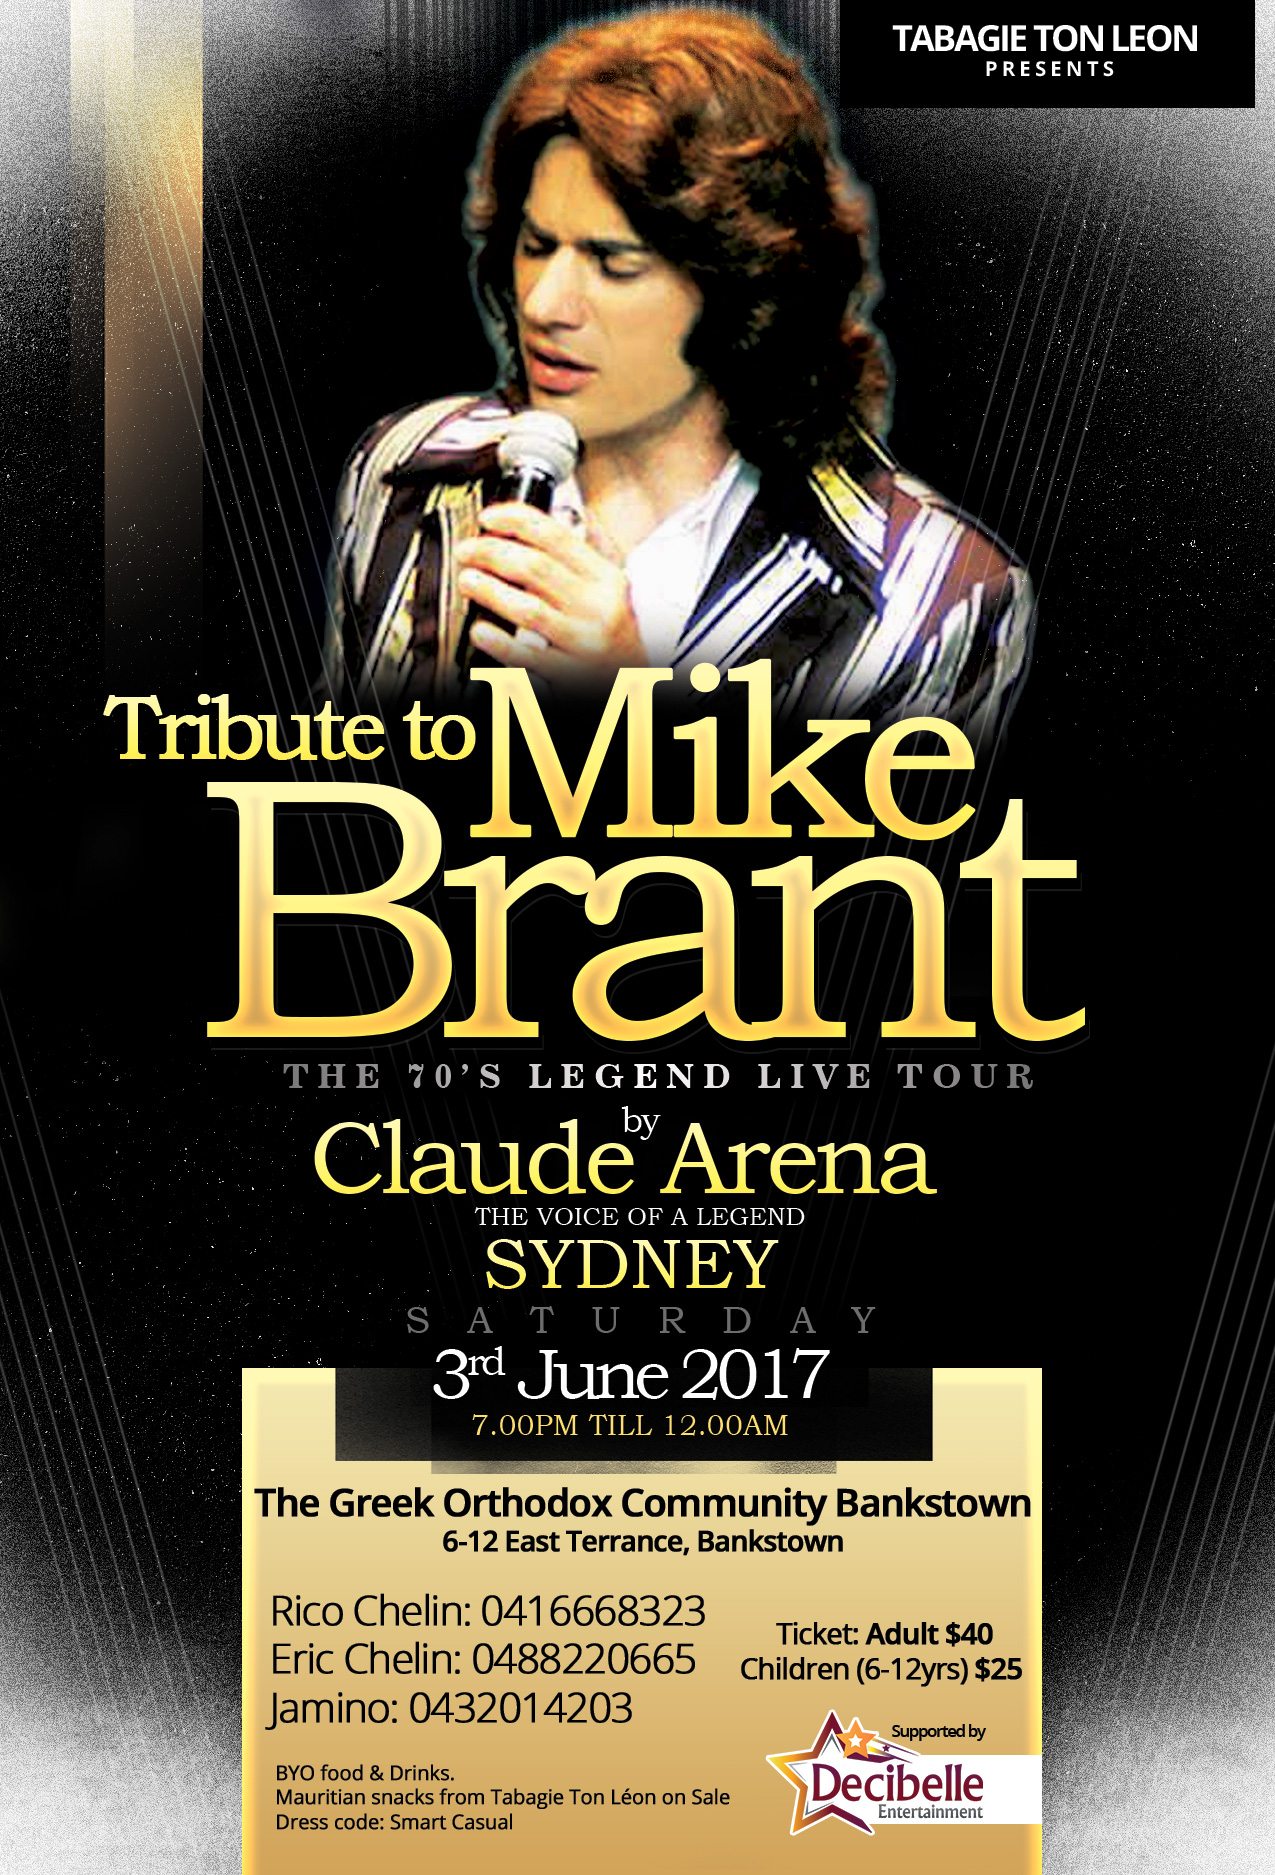 The Mike Brant Tribute Show